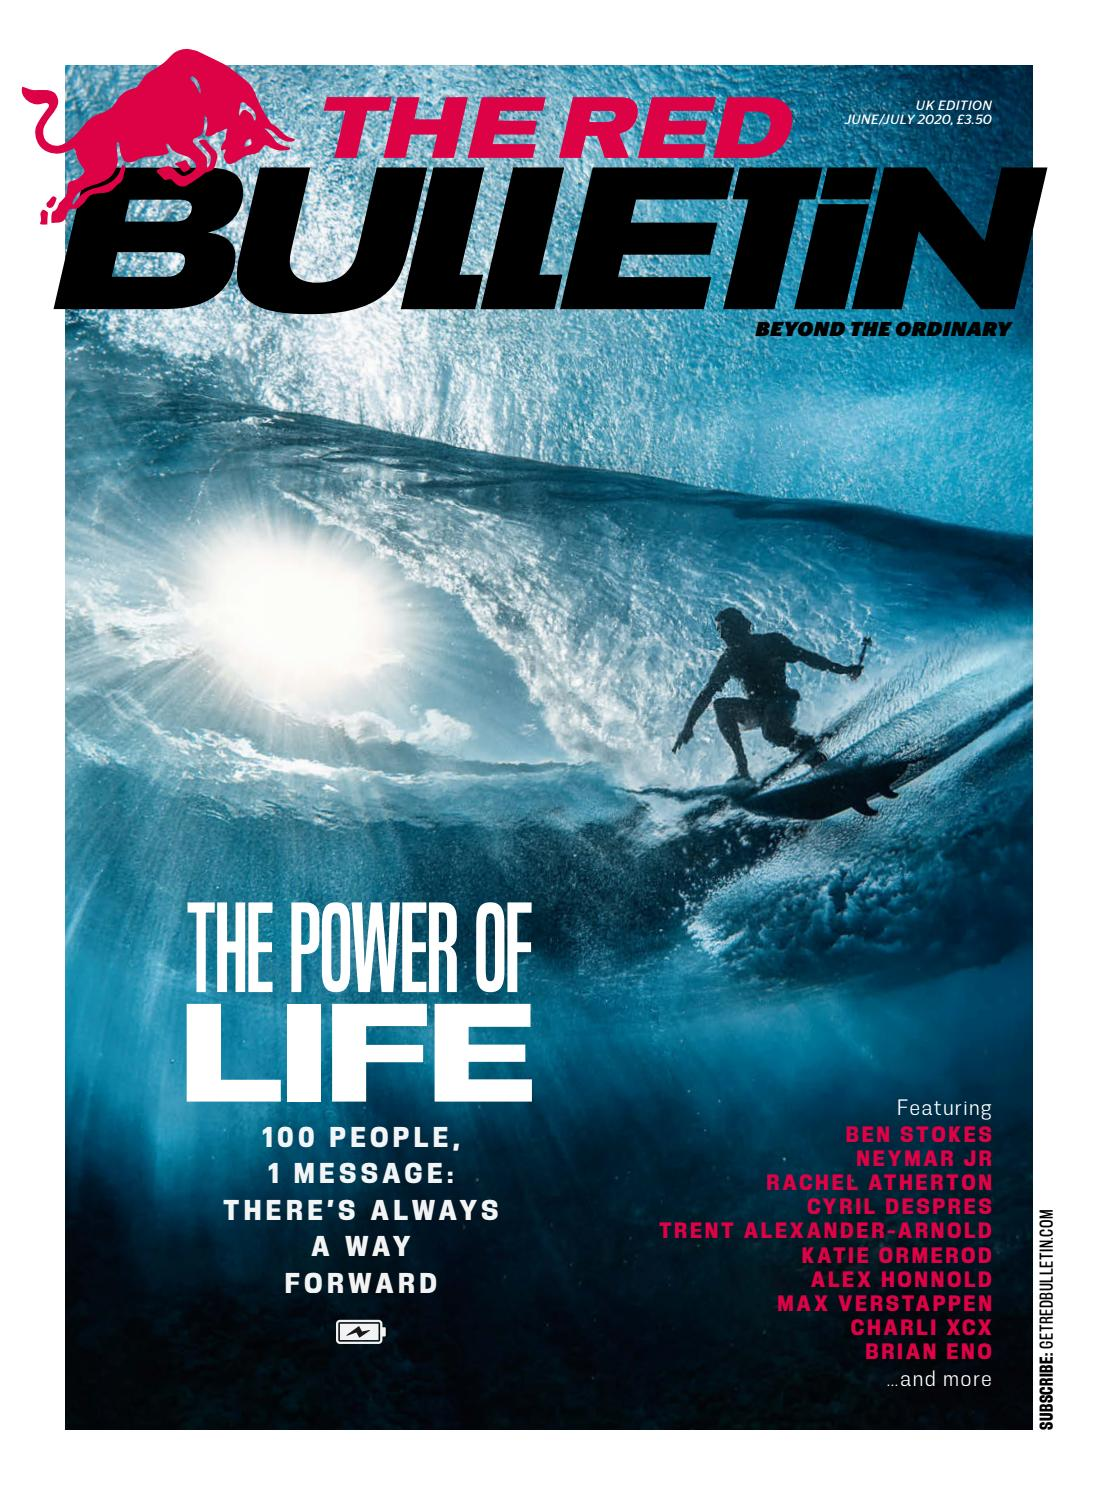 The Red Bulletin Uk 06 20 By Red Bull Media House Issuu